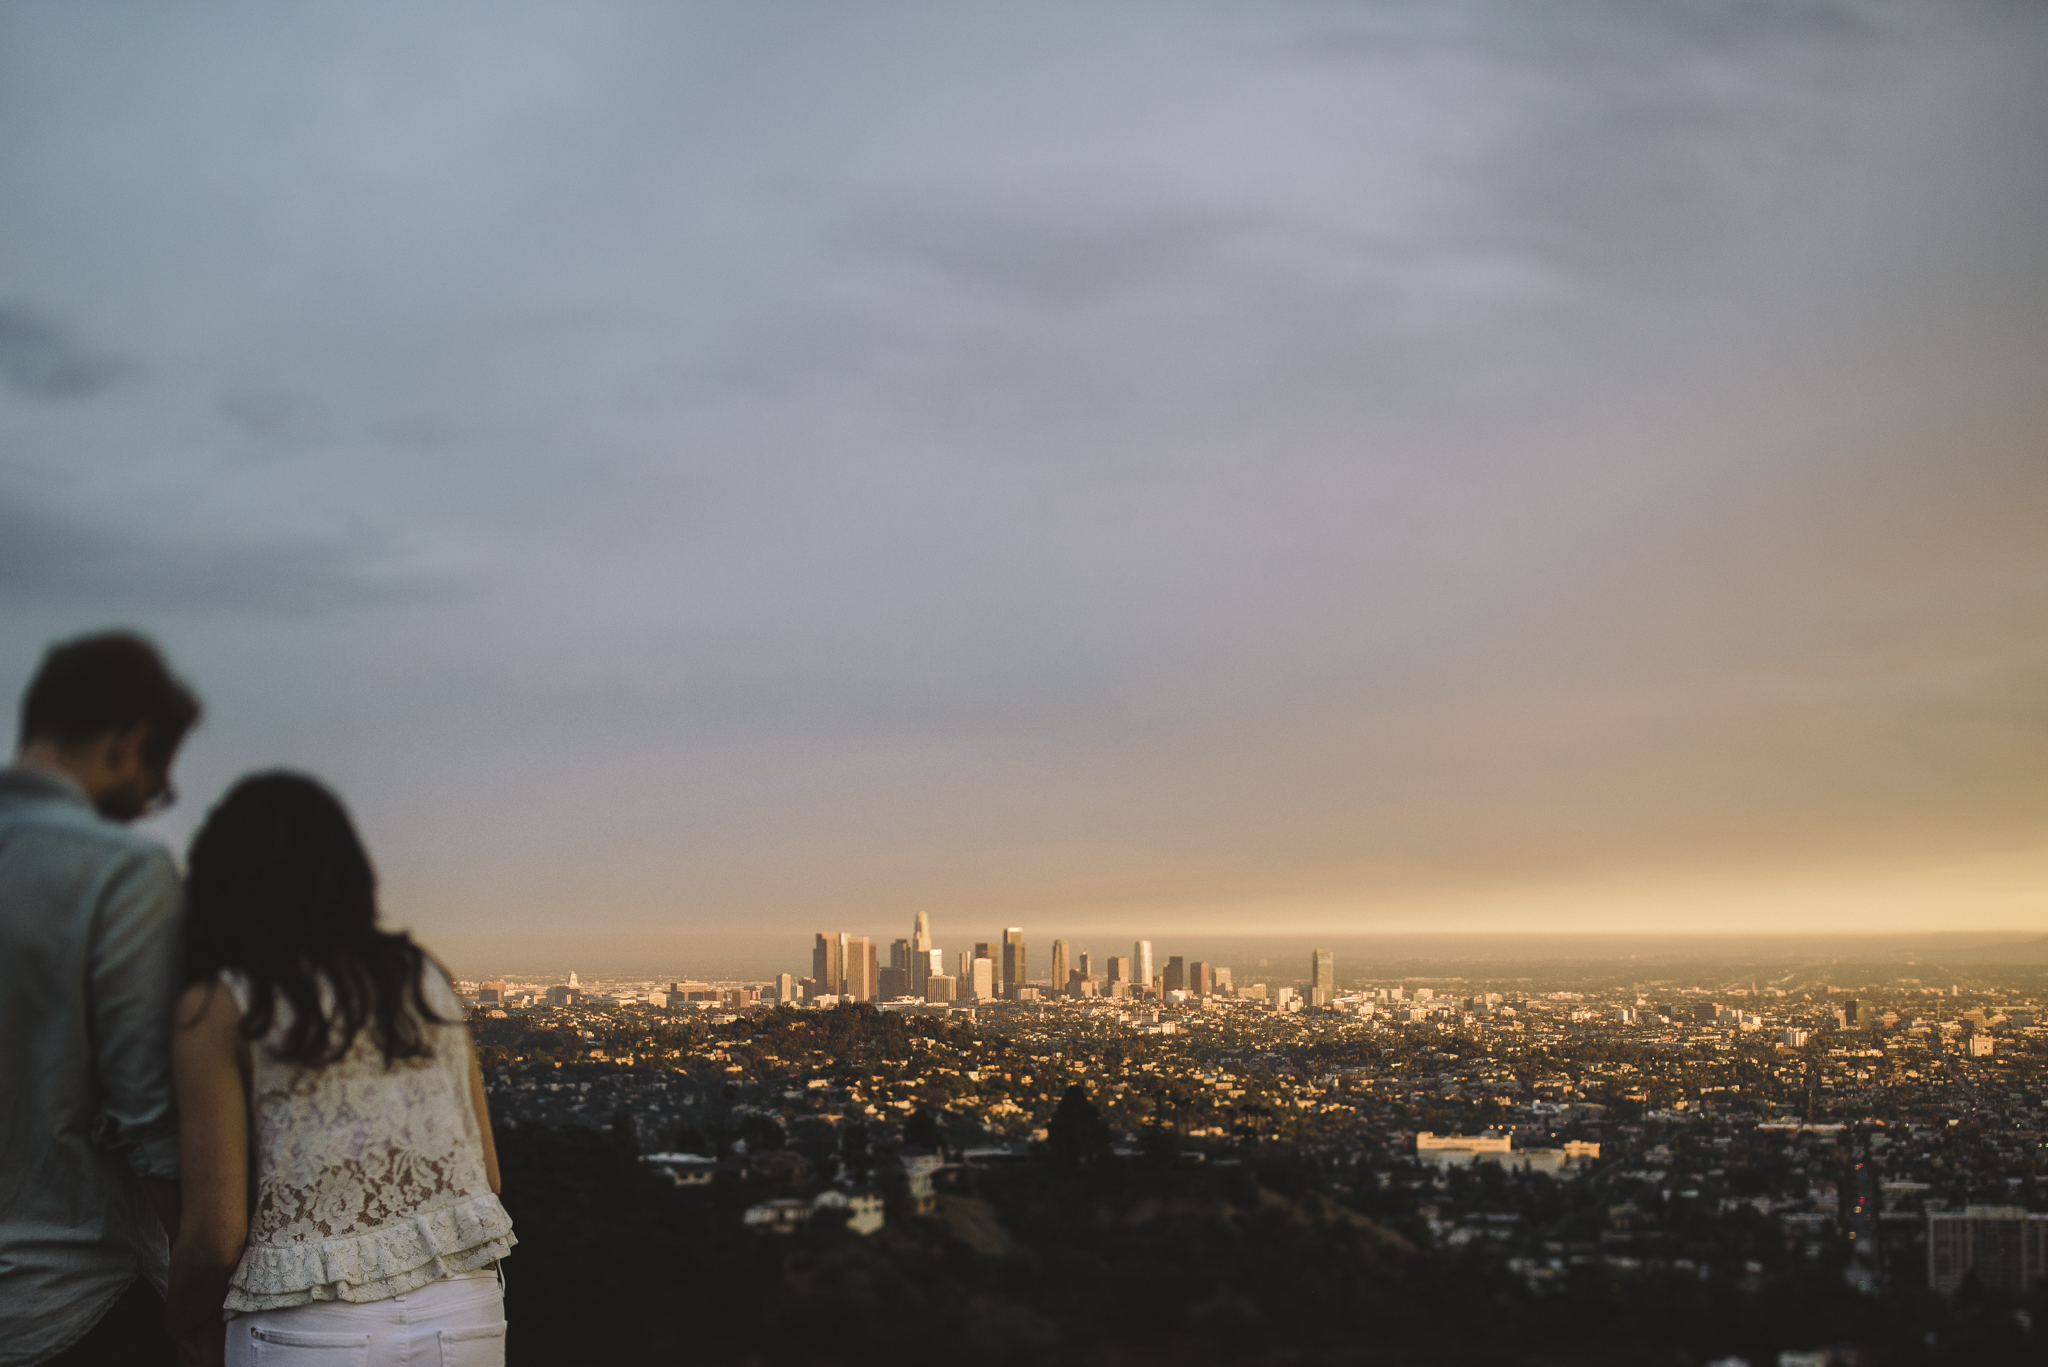 Isaiah & Taylor Photography - Los Angeles - Jacob & Rachel Engagement-119.jpg